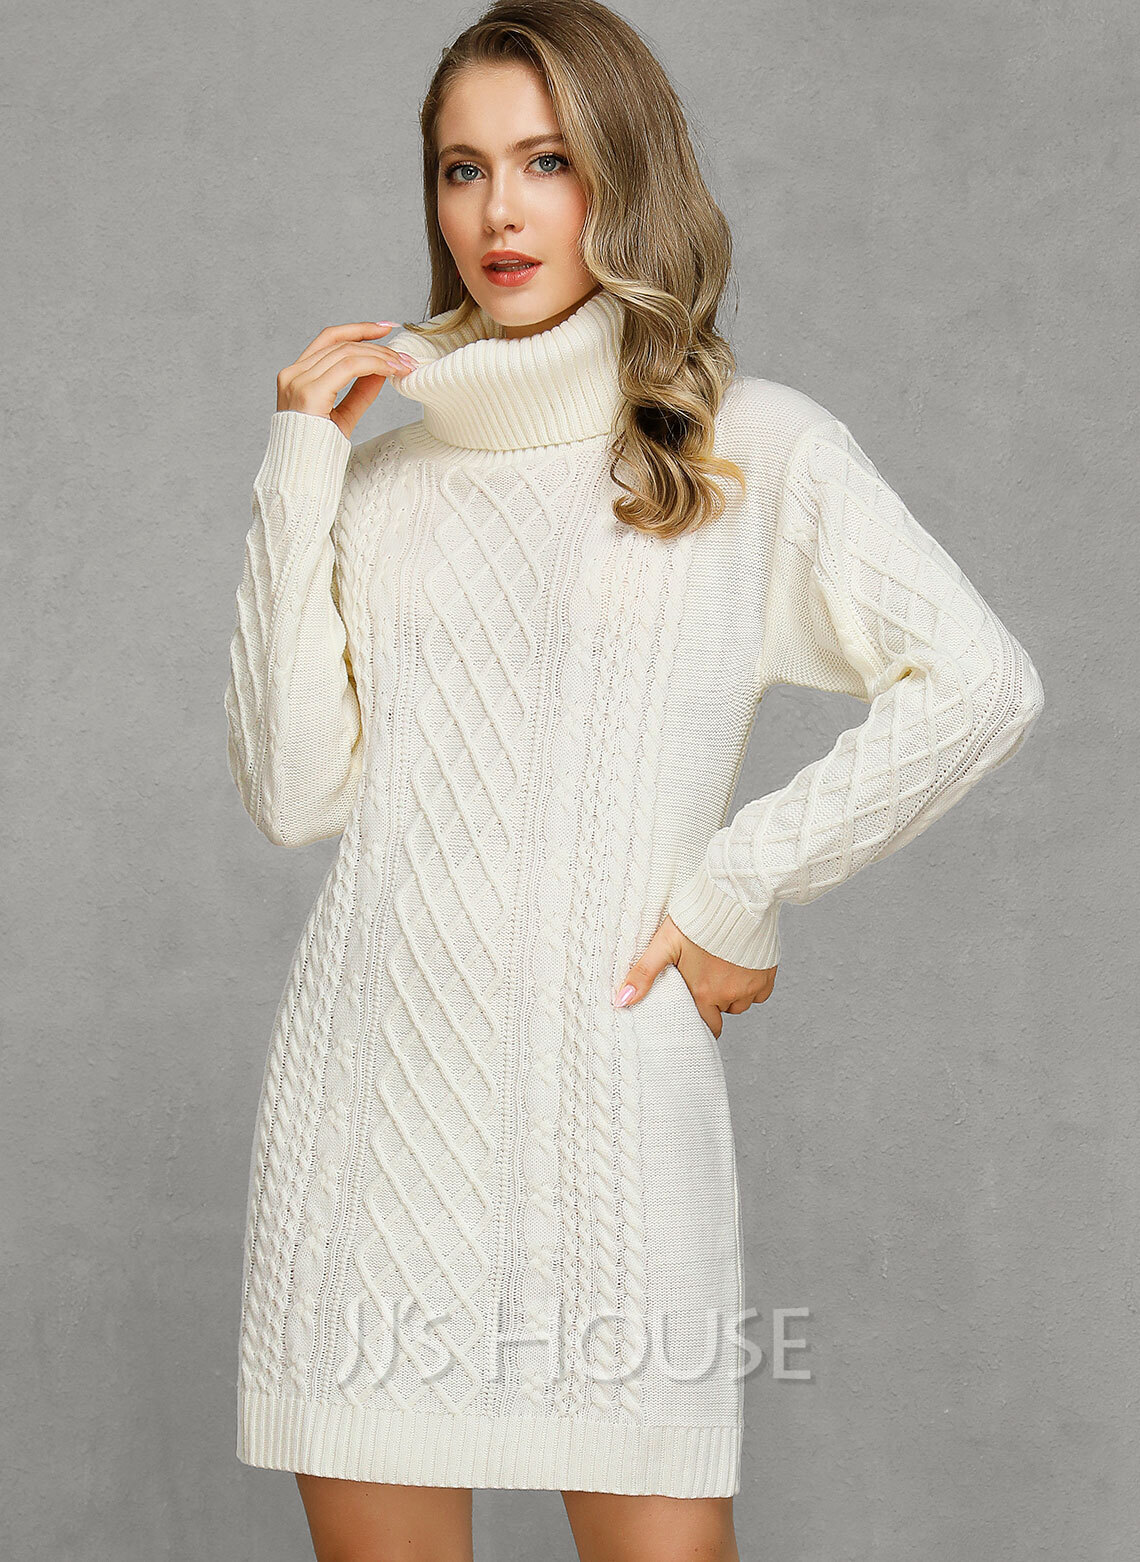 Cable-knit Solid Cotton Turtleneck Pullovers Sweater Dresses Sweaters